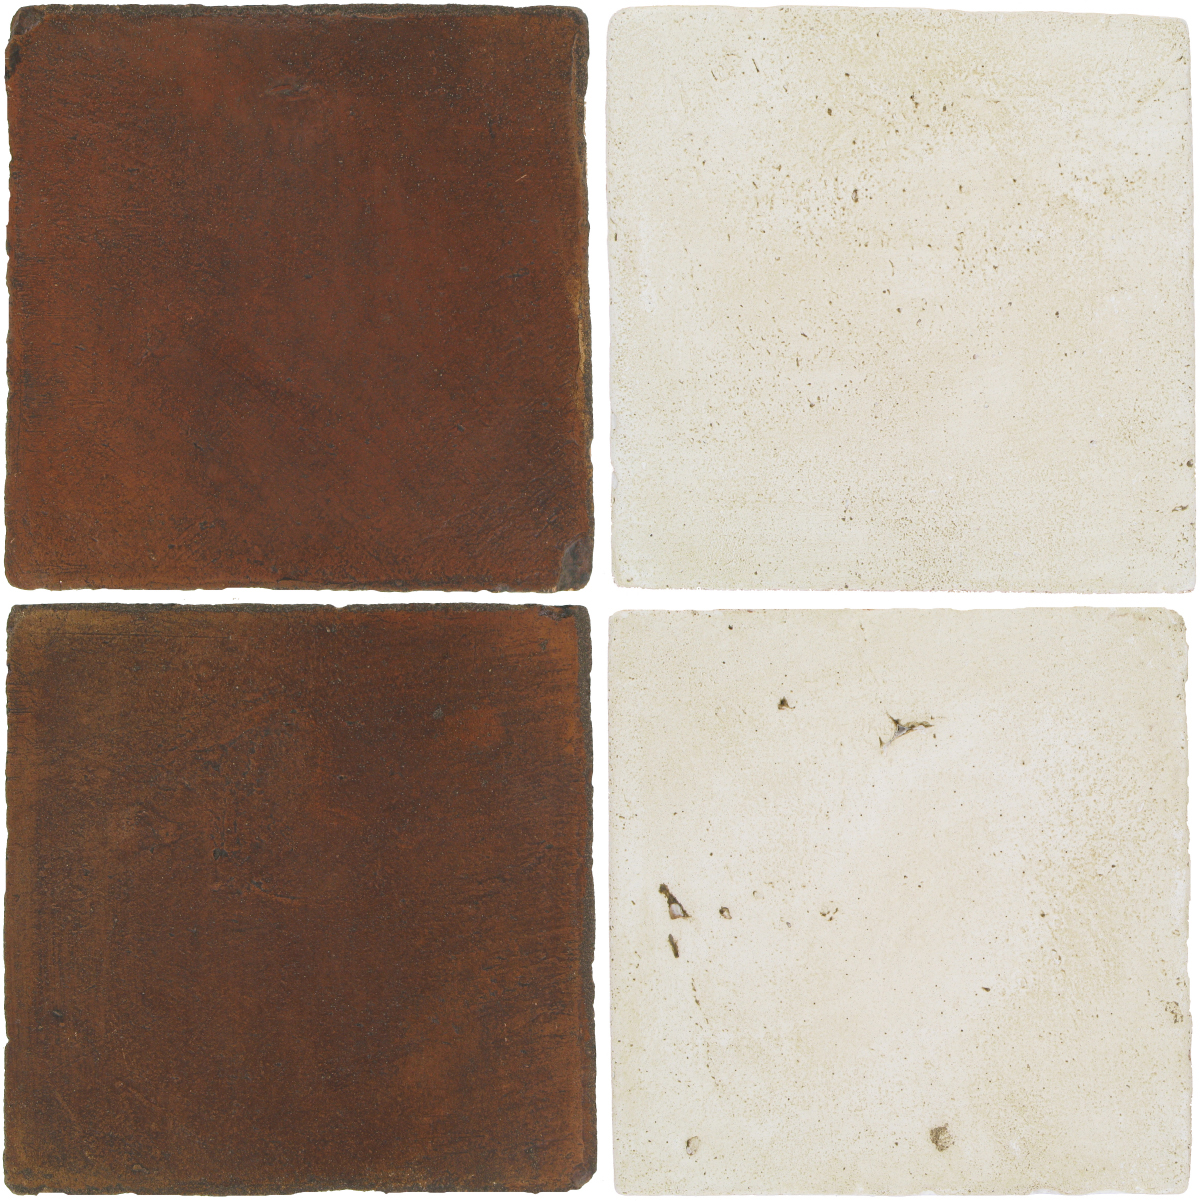 Pedralbes Antique Terracotta  2 Color Combinations  OHS-PSOW Old World + VTG-PGAW Antique White